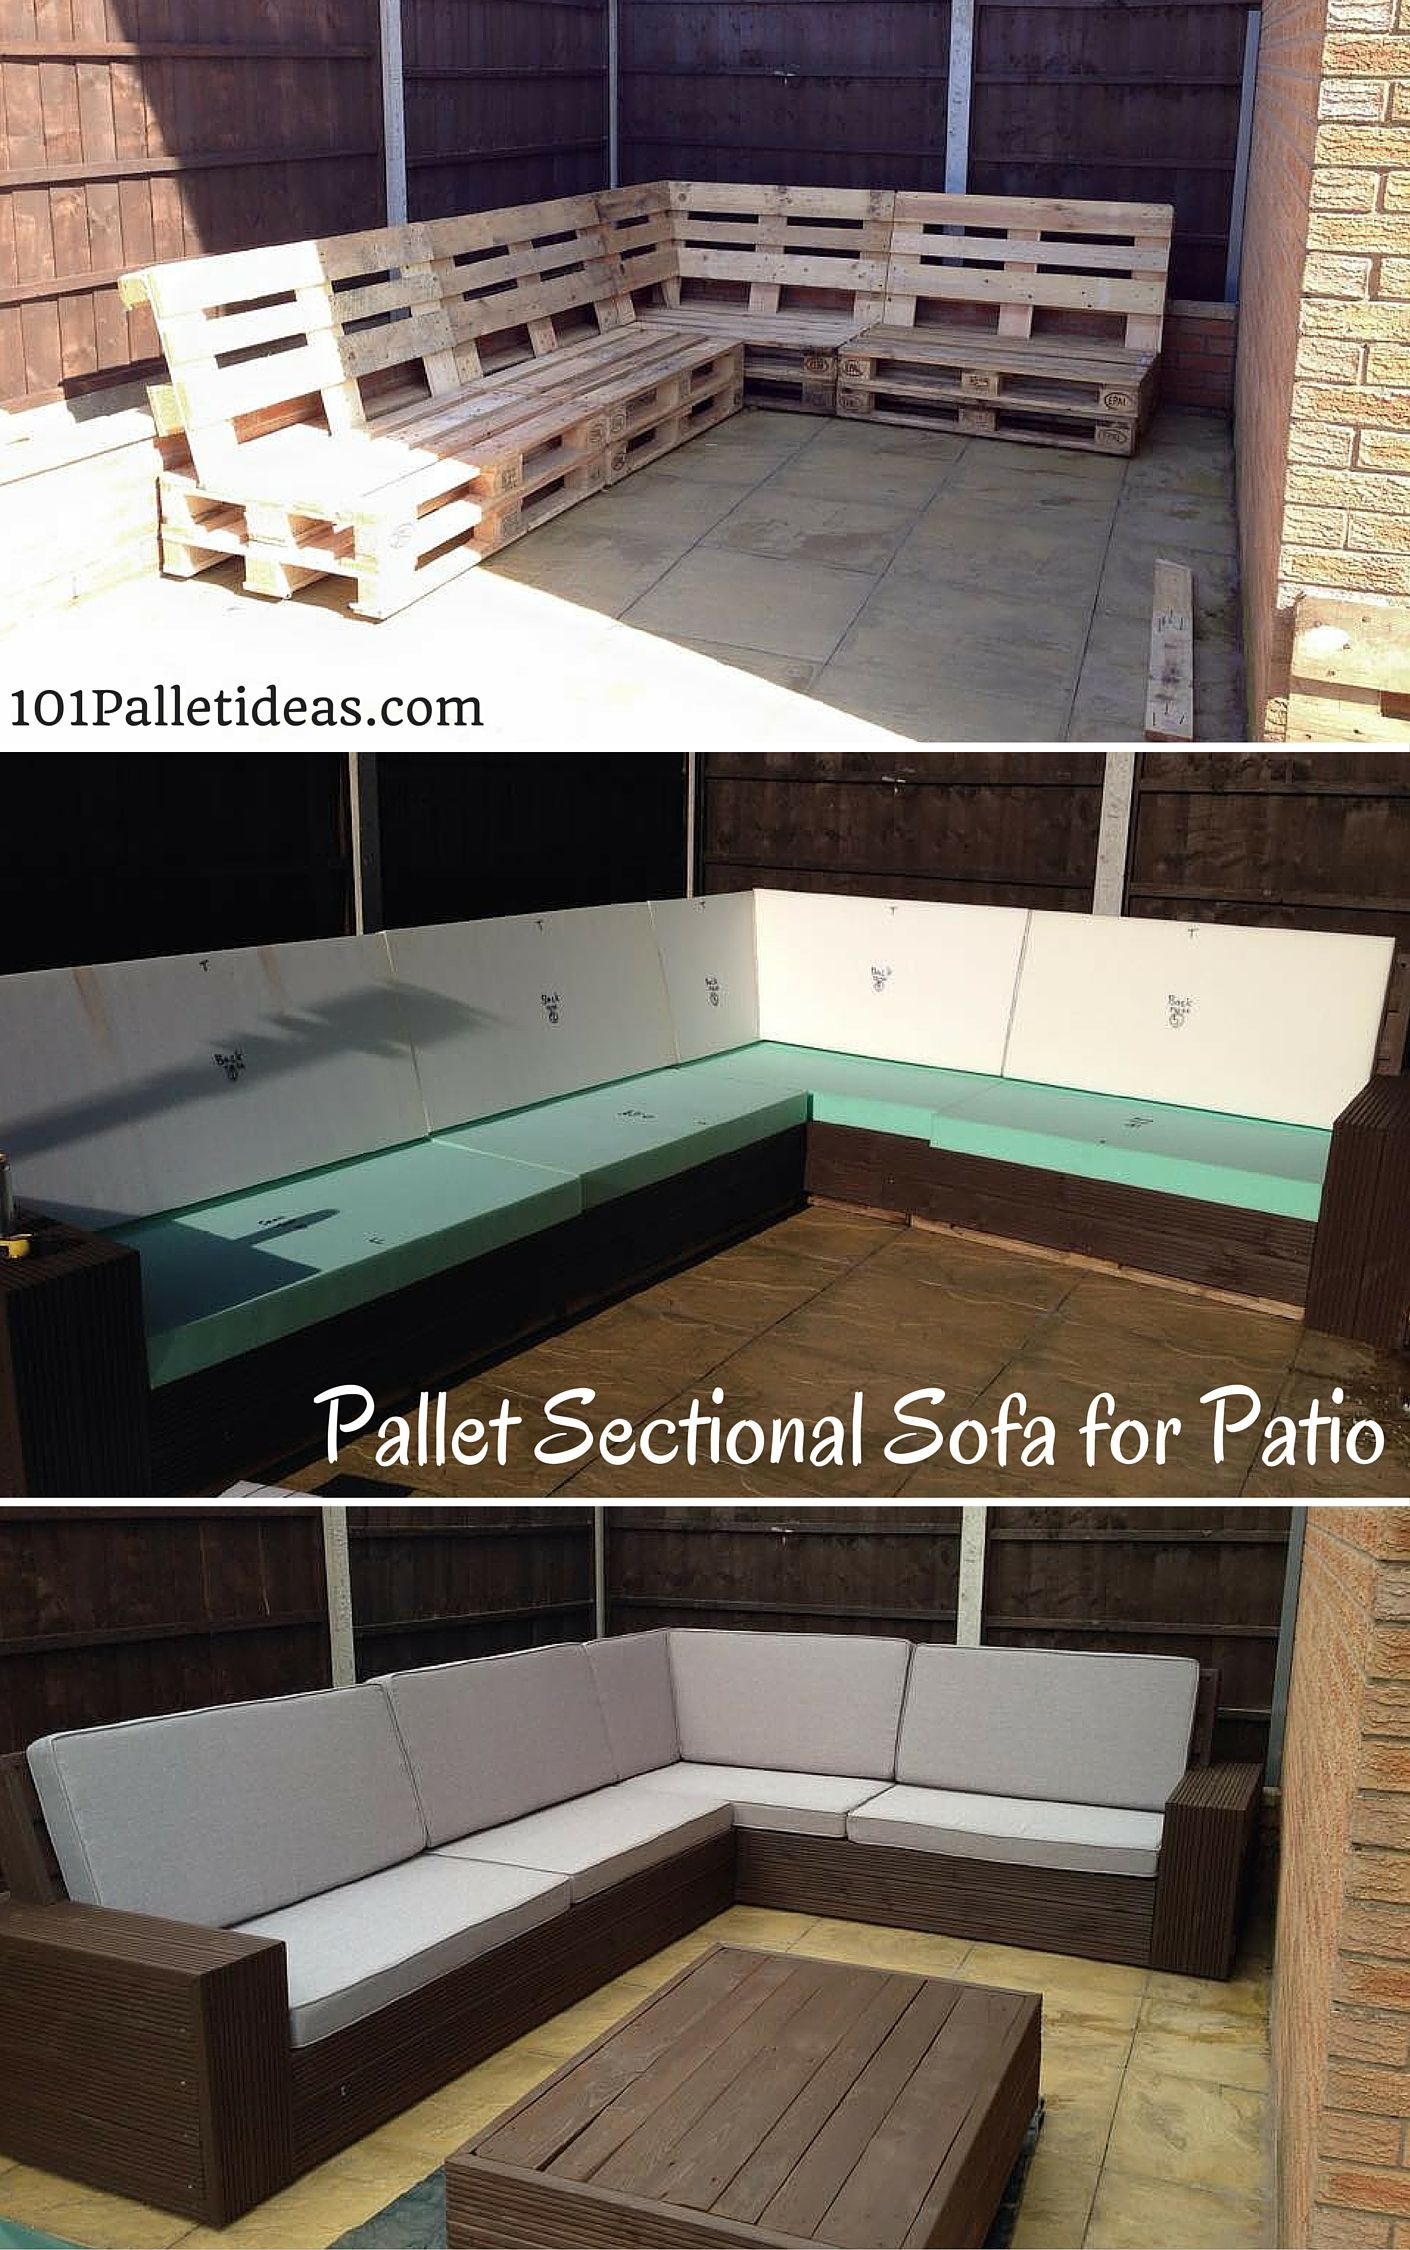 pallet patio furniture decor. DIY #Pallet Sectional #Sofa For Patio - Self-Installed 8-10 Seater 1001 Pallet Ideas Furniture Decor H